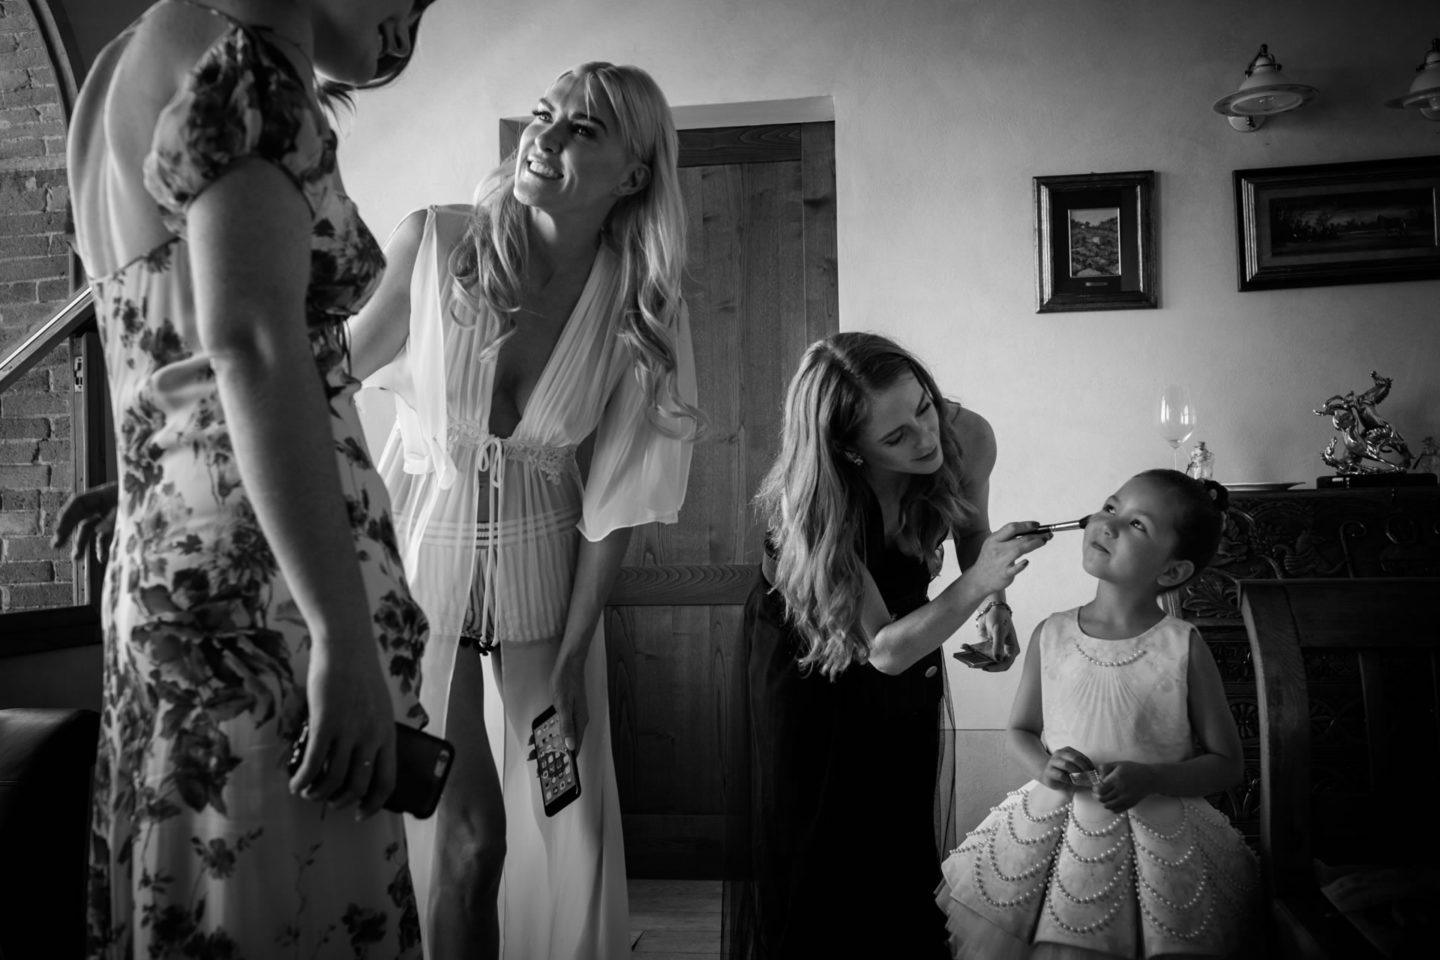 Make Up - 4 :: Exciting wedding in the countryside of Siena :: Luxury wedding photography - 3 :: Make Up - 4